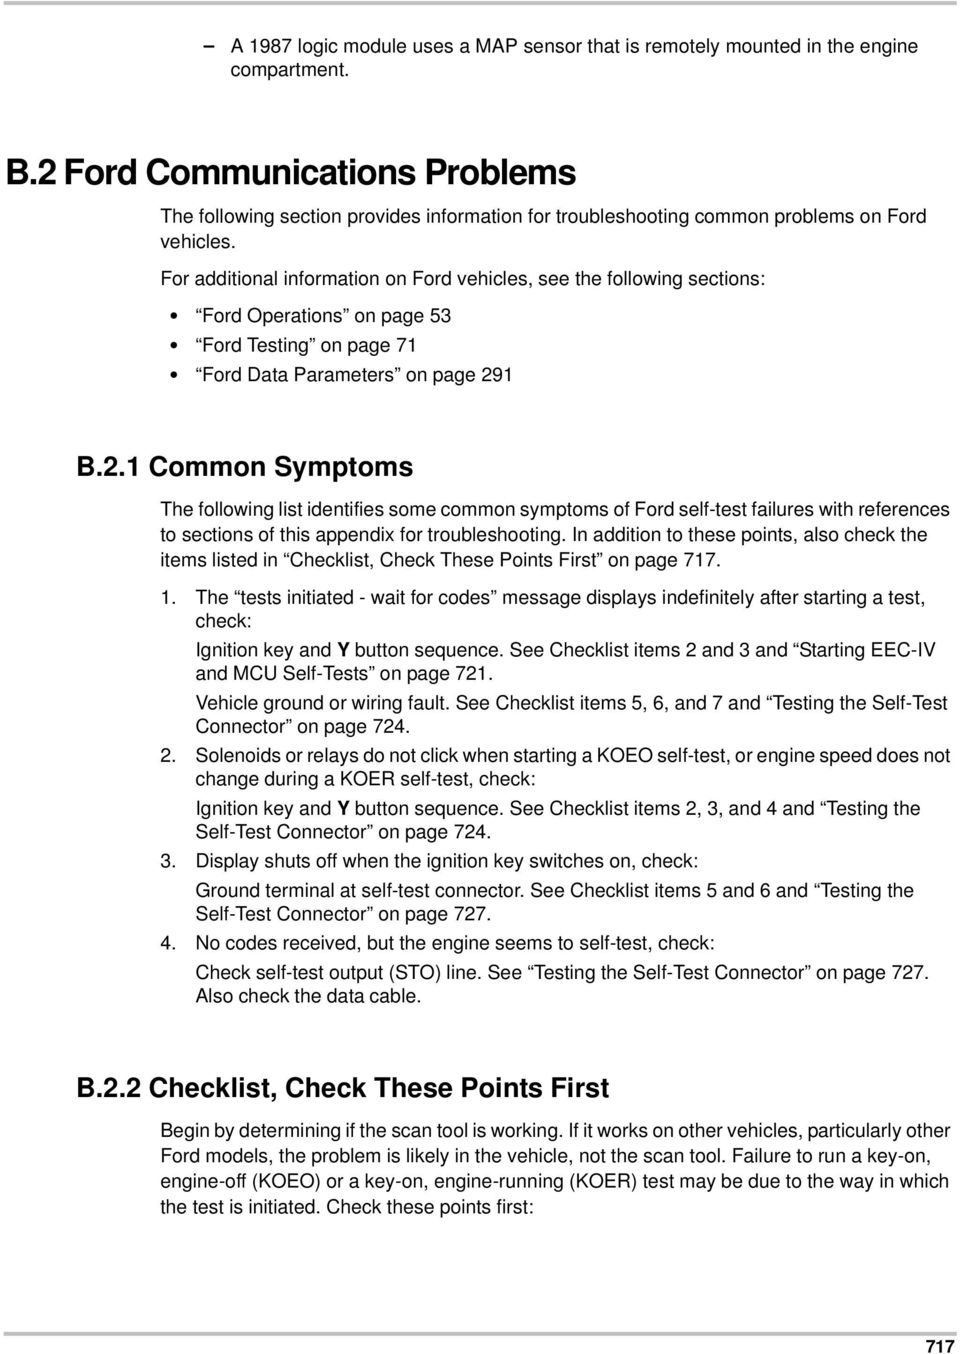 Troubleshooting Appendix B B1 Chrysler Communications Problems Volvo 850 Common For Additional Information On Ford Vehicles See The Following Sections Operations Page